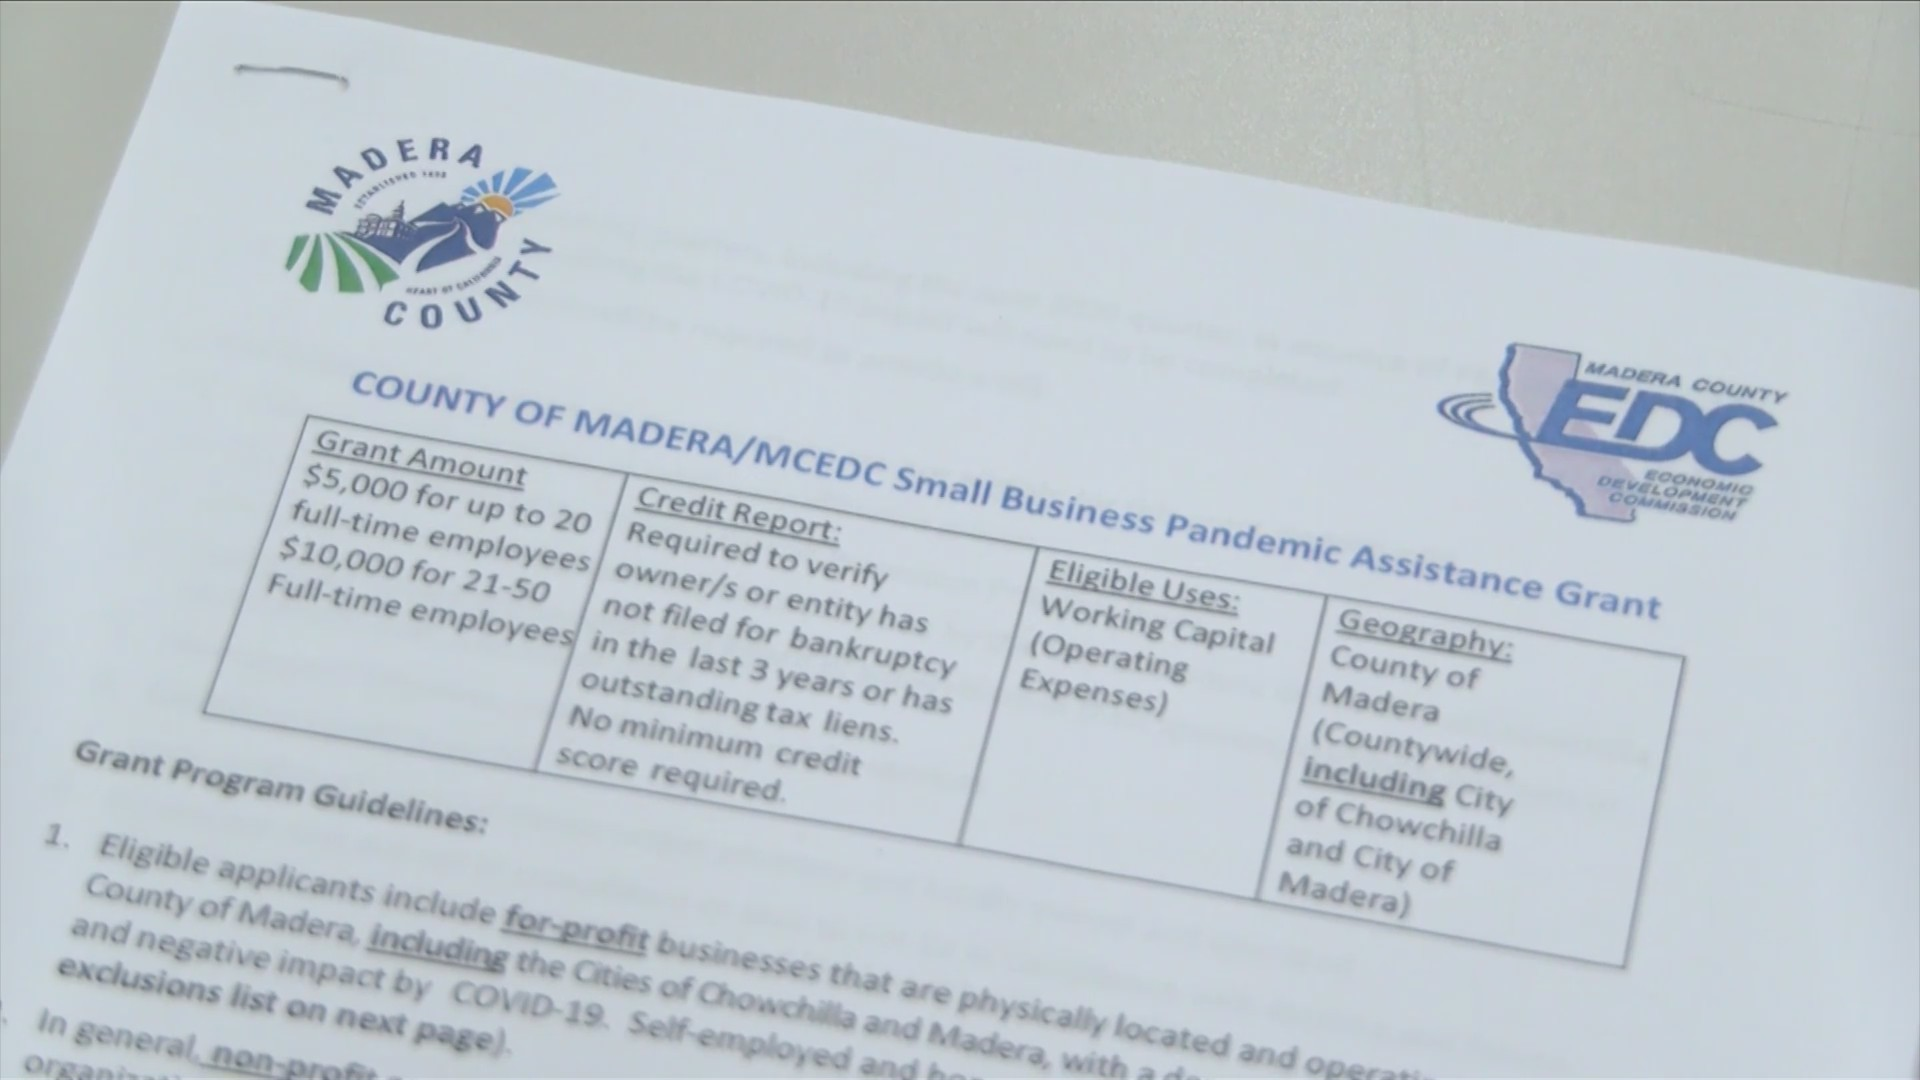 Small business COVID-19 relief grants now available in Madera County